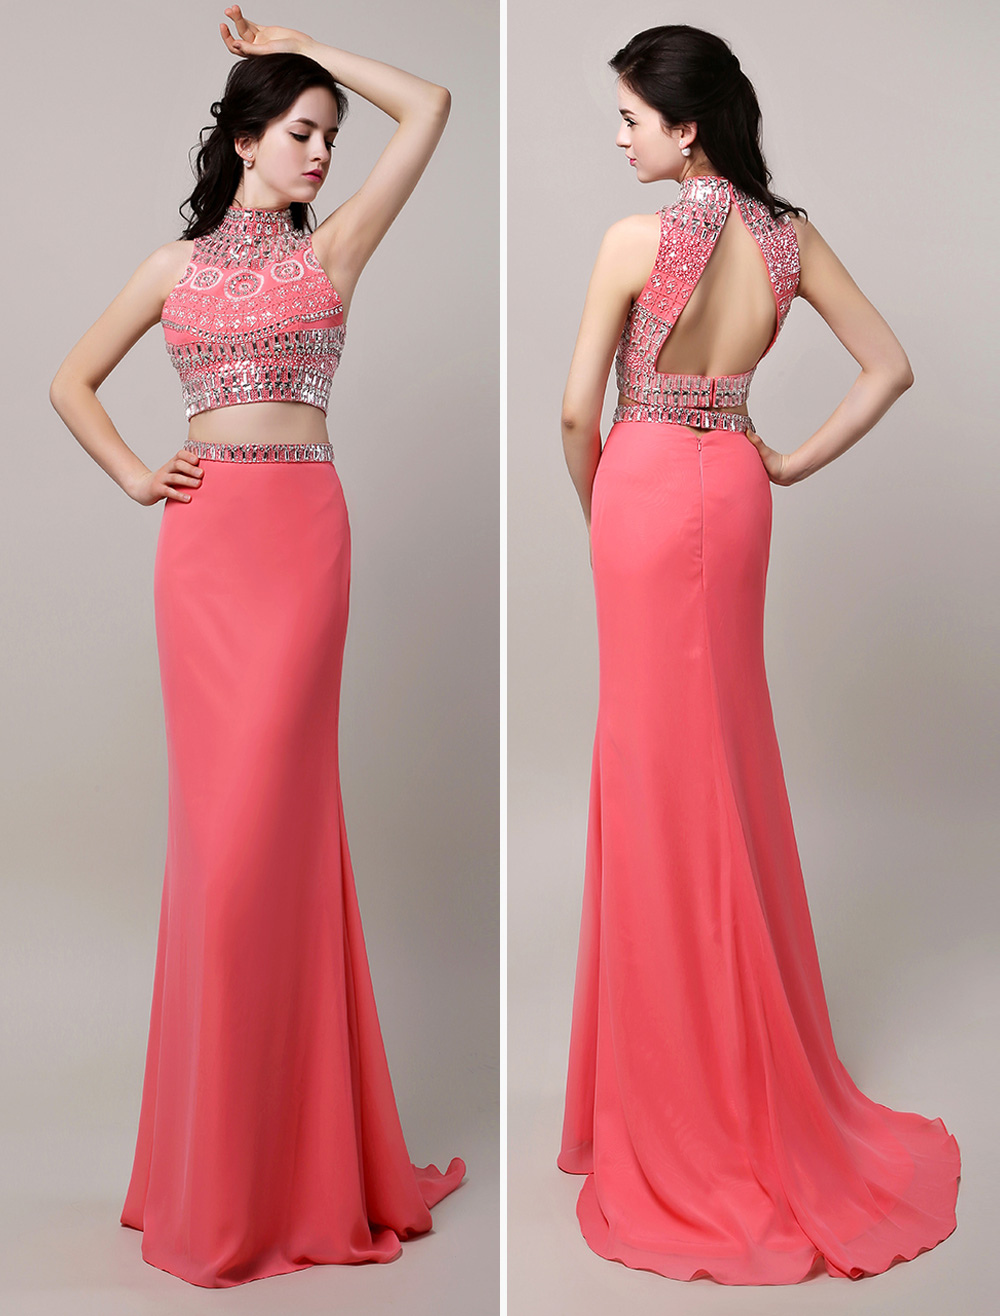 Two Piece Prom Dress 2018 Long Coral Crop Top Backless Sheath Beaded High Neck Chiffon Sweep Train Party Dress